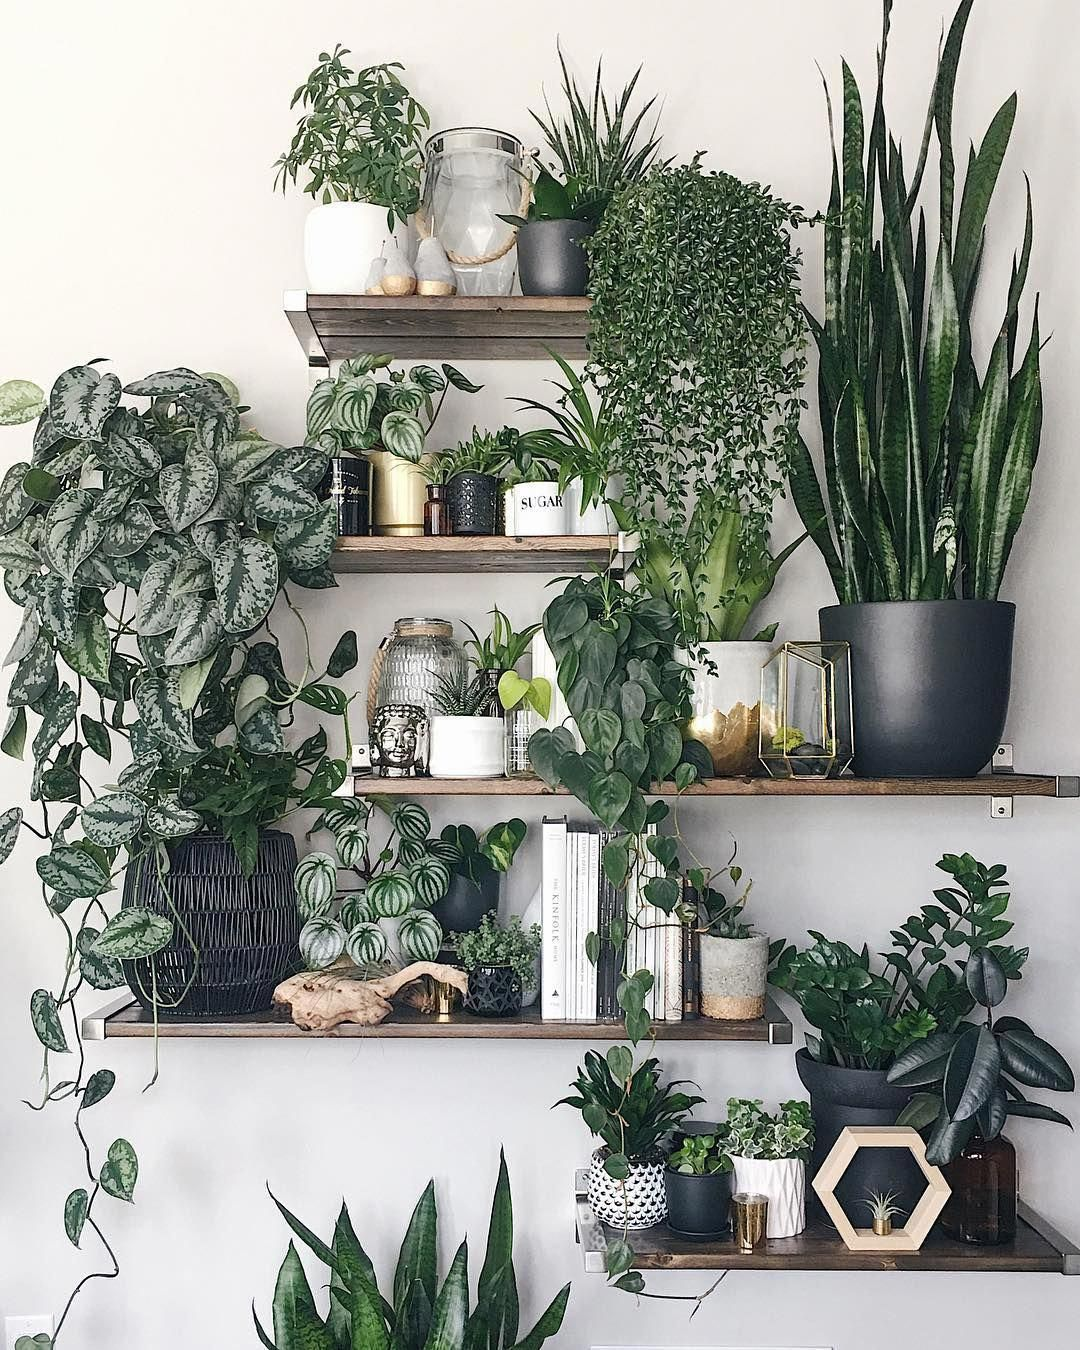 House Plants For Shady Rooms: Shelving And Display Ideas Spotted On Instagram Offering